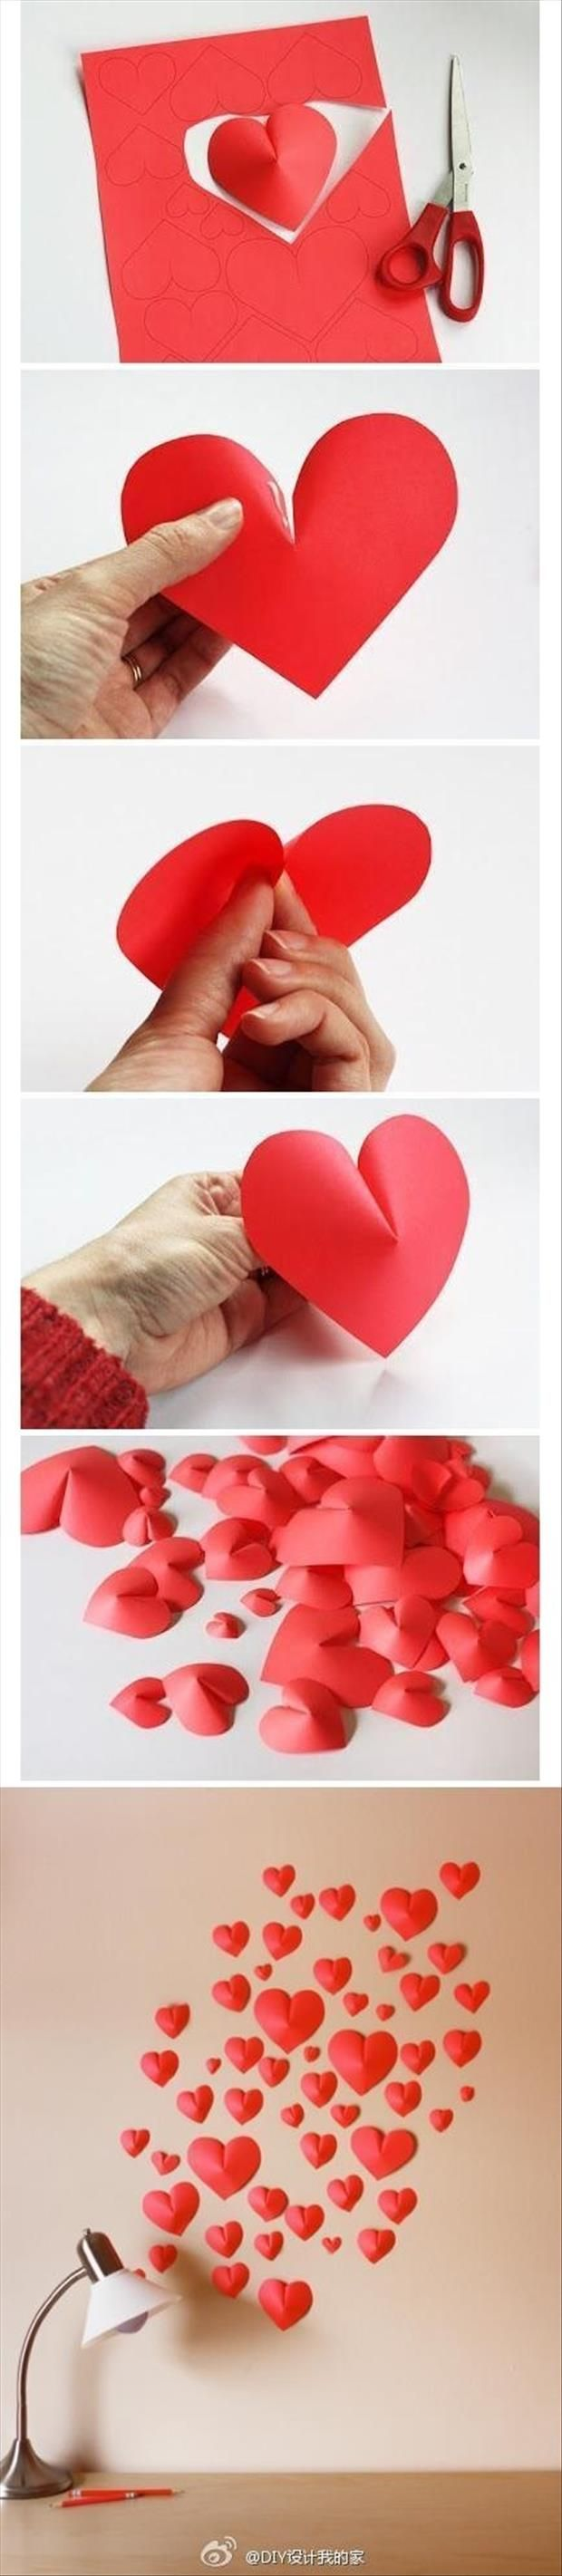 Find Inspiration With Valentines  Wall Art And Gift Ideas-homesthetics.net (93)